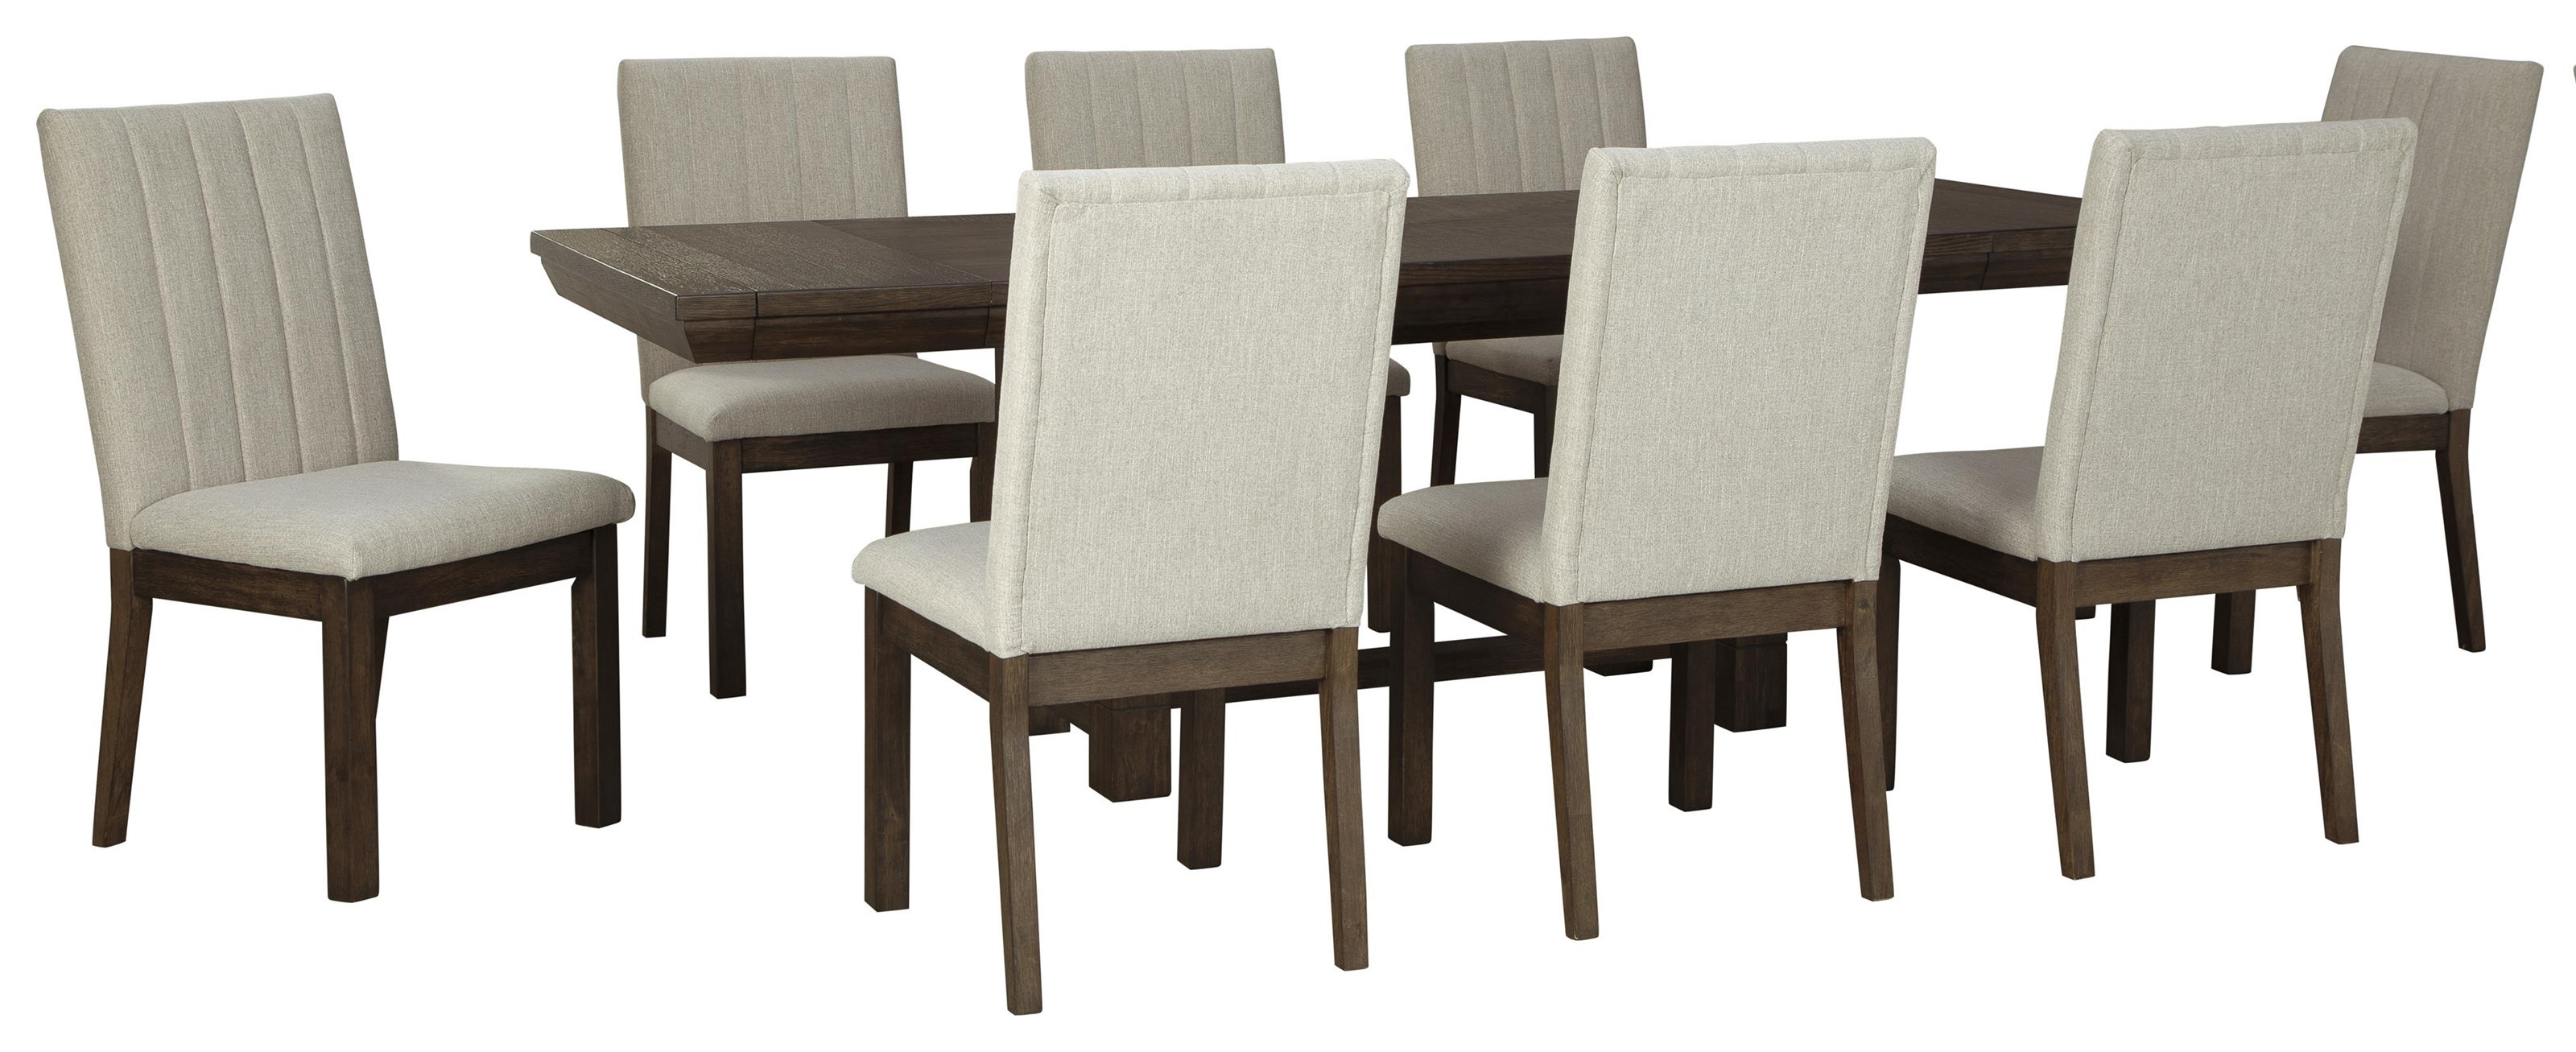 Picture of: Ashley Furniture Dellbeck D748 45 8×01 9 Pc Table And 8 Uph Side Chairs Sam Levitz Furniture Dining 7 Or More Piece Sets